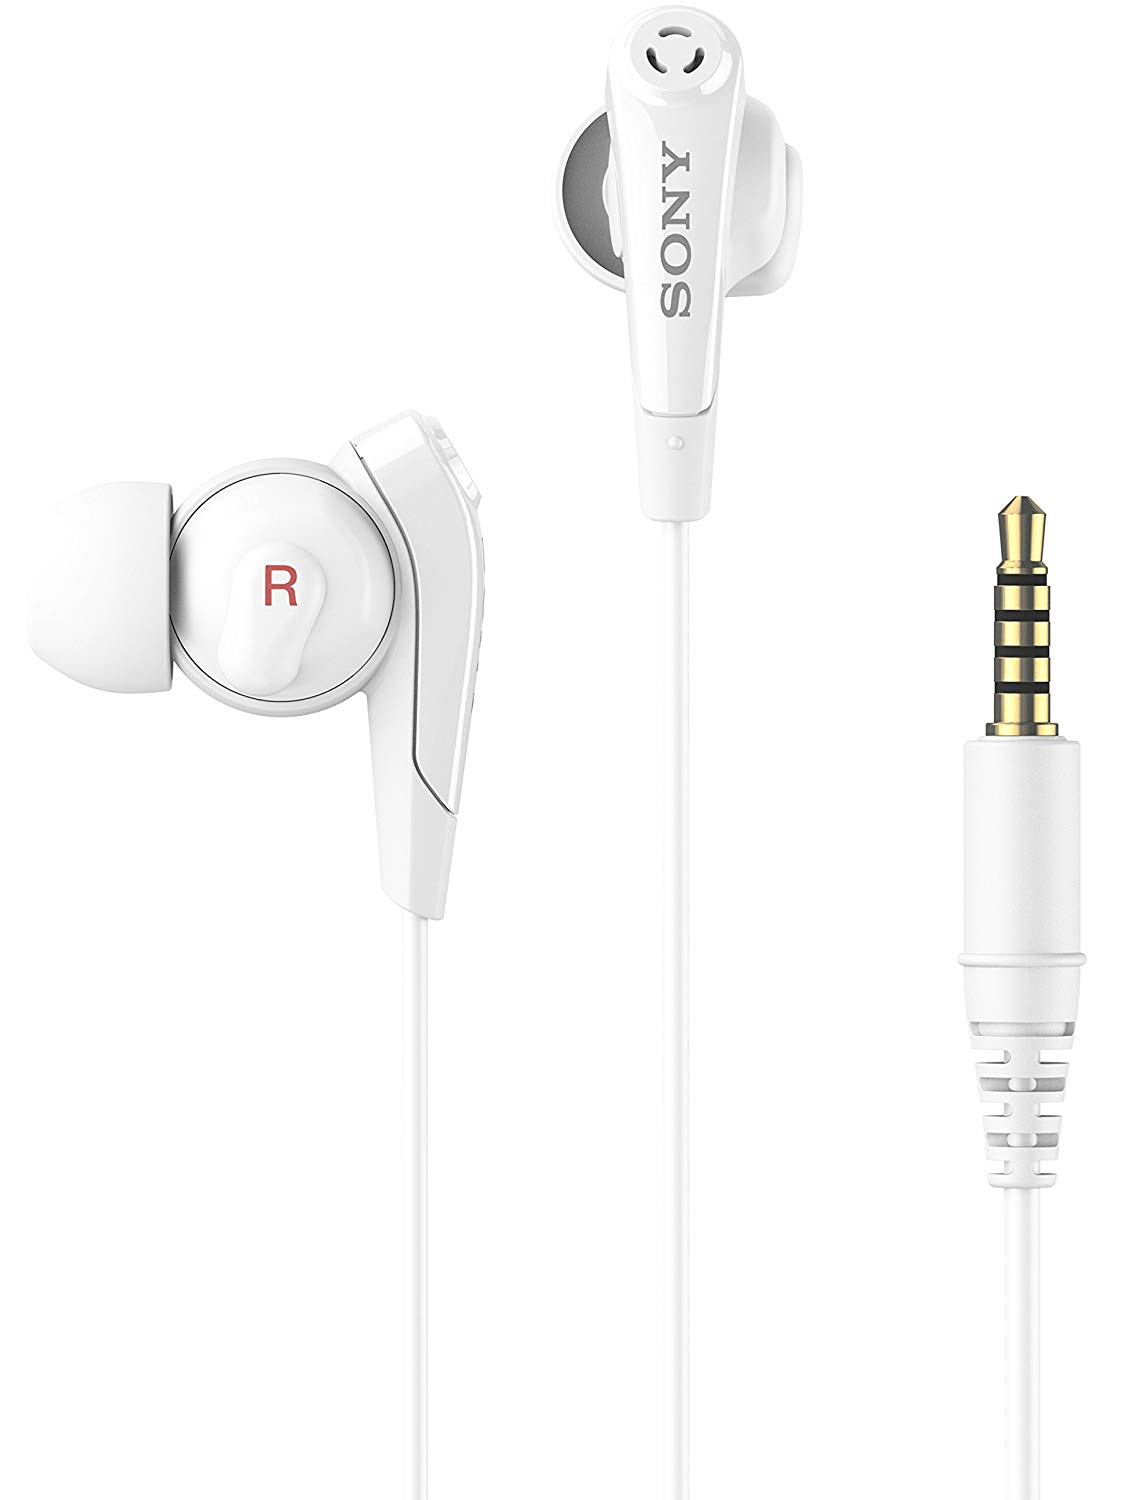 Sony MDR-NC750WH In-Ear Headphones with Built-in Microphone